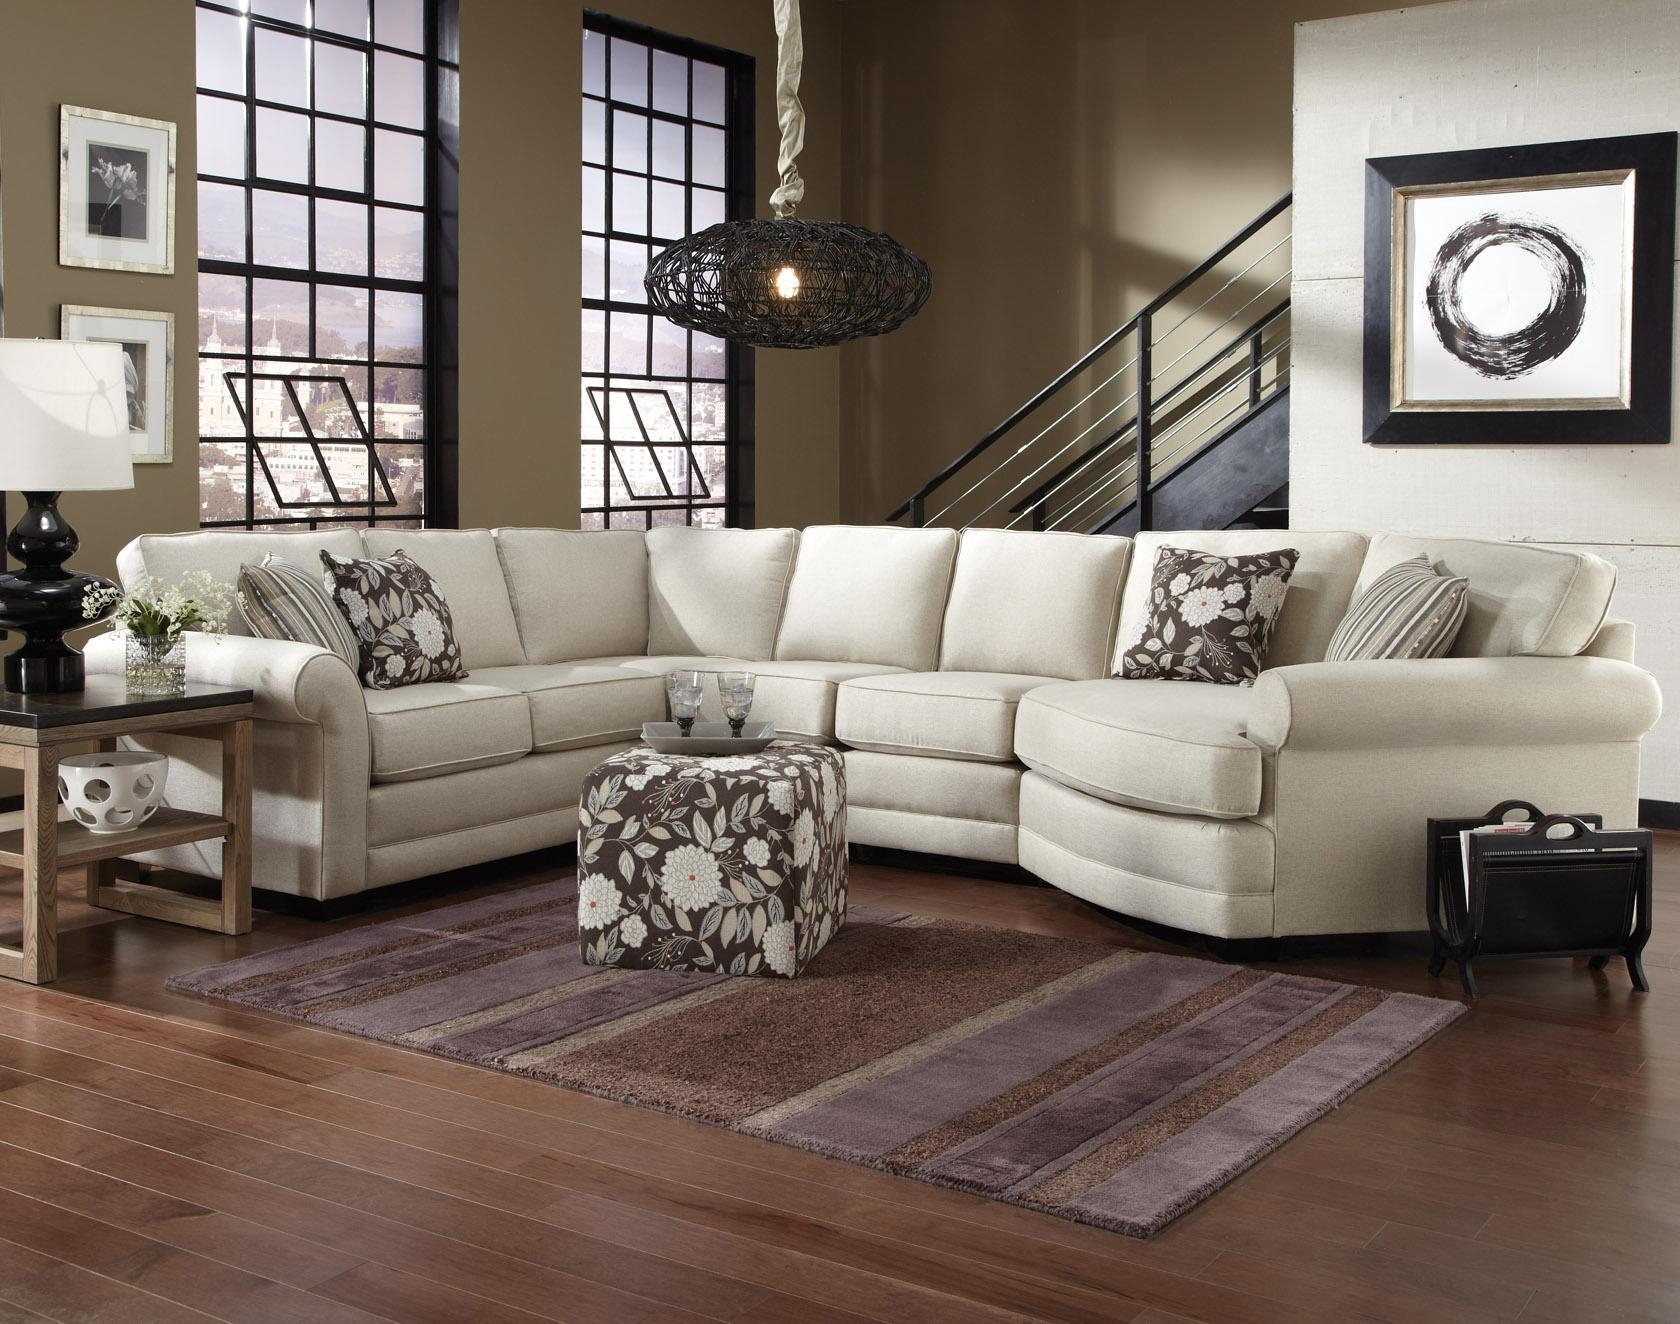 England Brantley 5 Seat Sectional Sofa With Cuddler – Dunk Throughout Wide Seat Sectional Sofas (View 6 of 20)